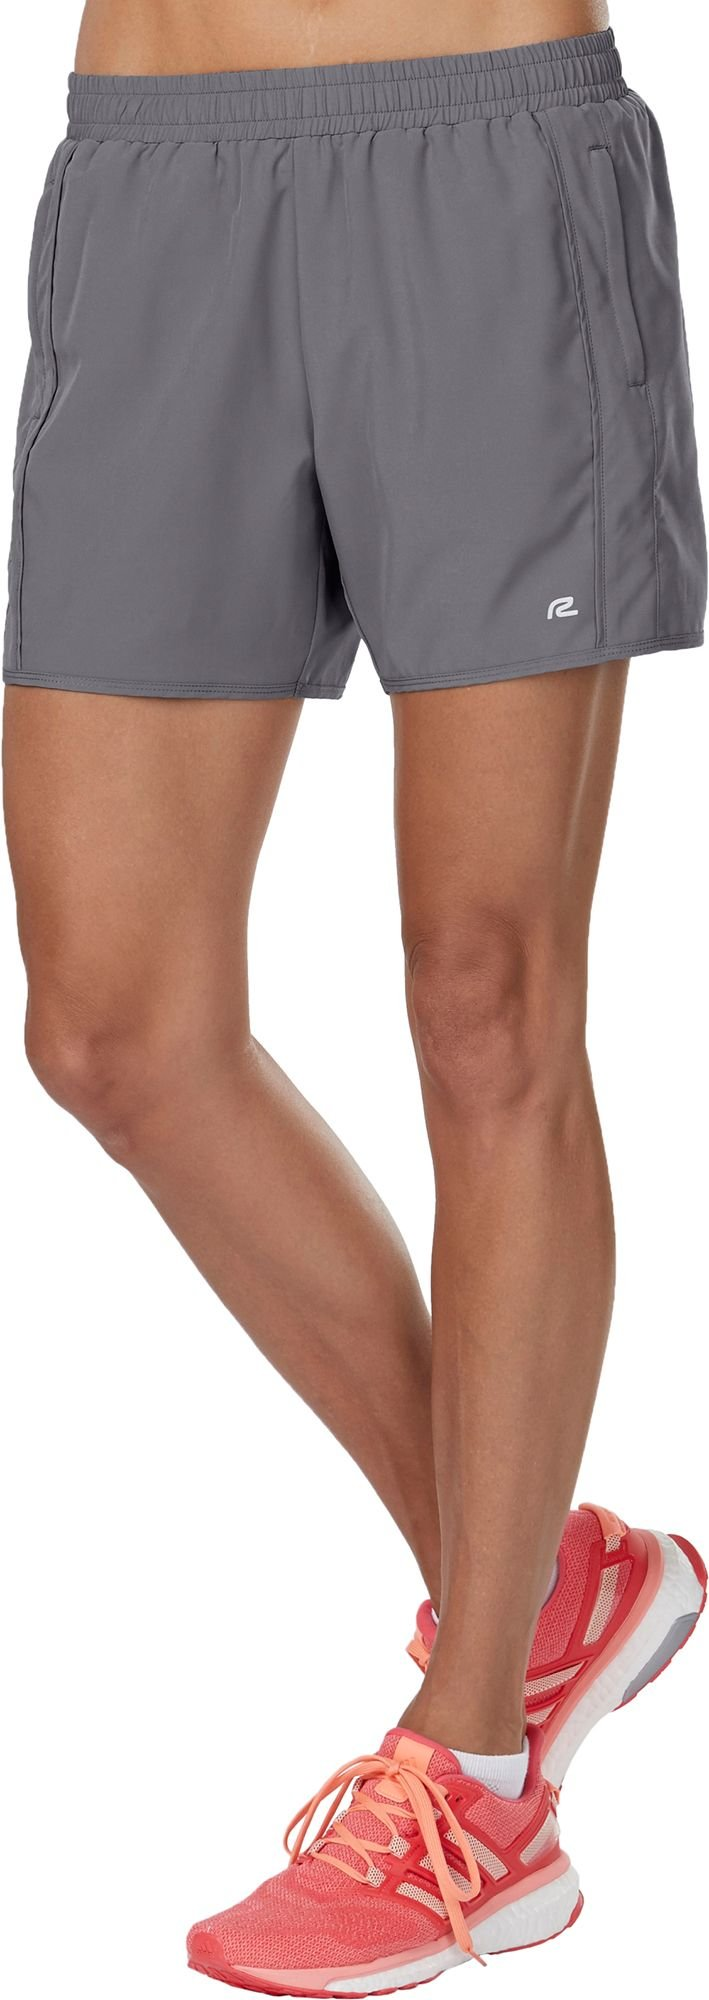 R-Gear Women's High Five Running Shorts 5-inch Length | Multiple Pockets with Zippers, Inner Brief Liner, Breathable Fabric, Grey Mist, S by Road Runner Sports